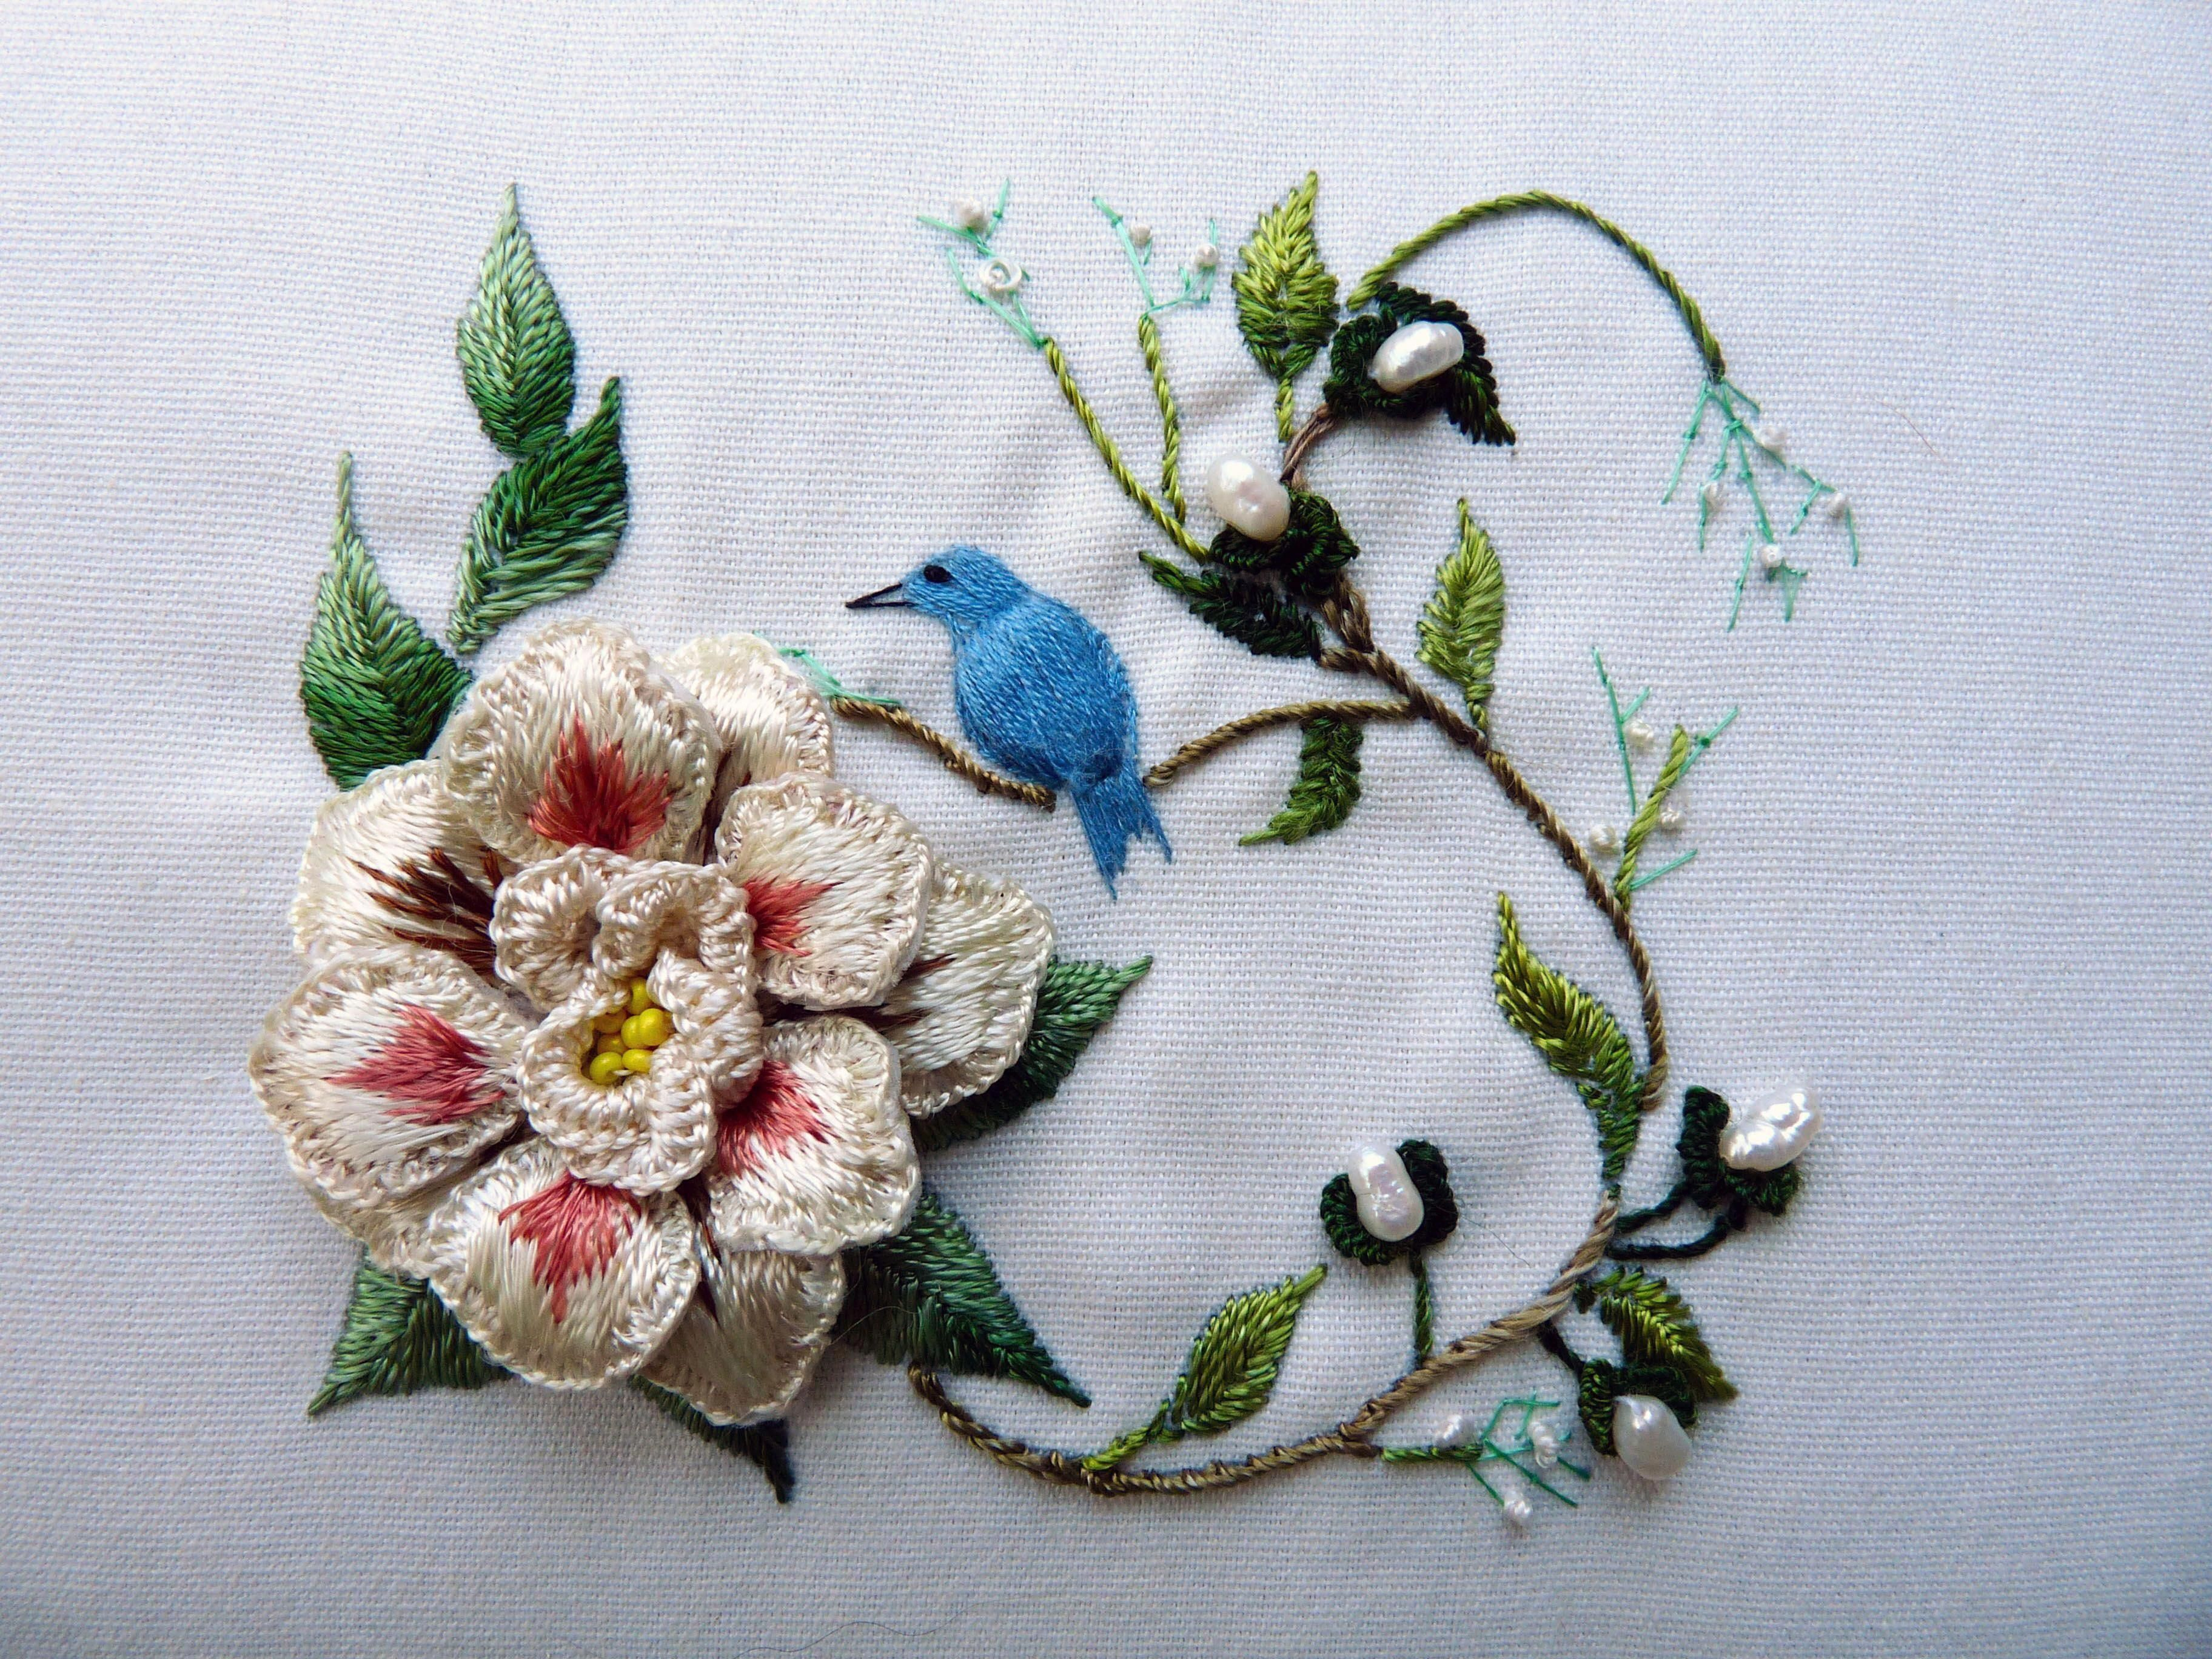 My newest set http://www.stitchdelight.net Is now